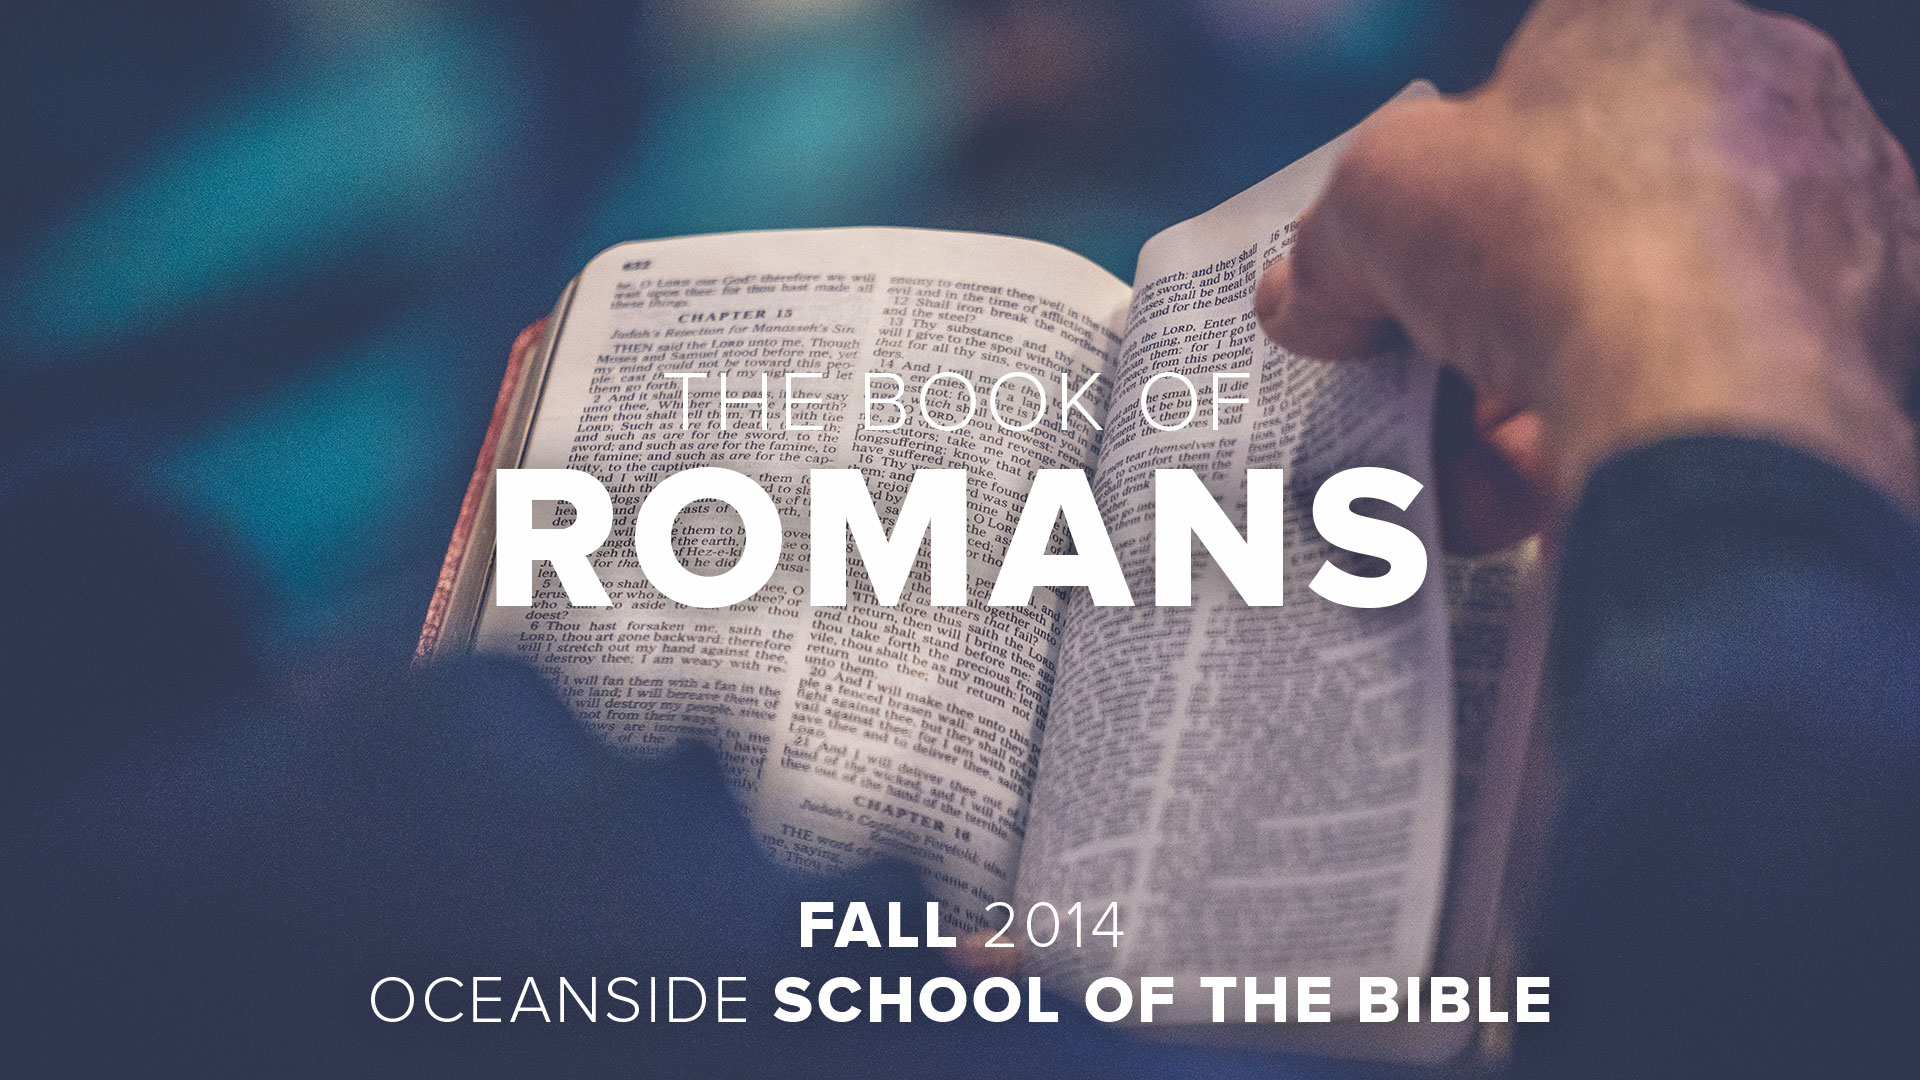 Session 8 - Romans